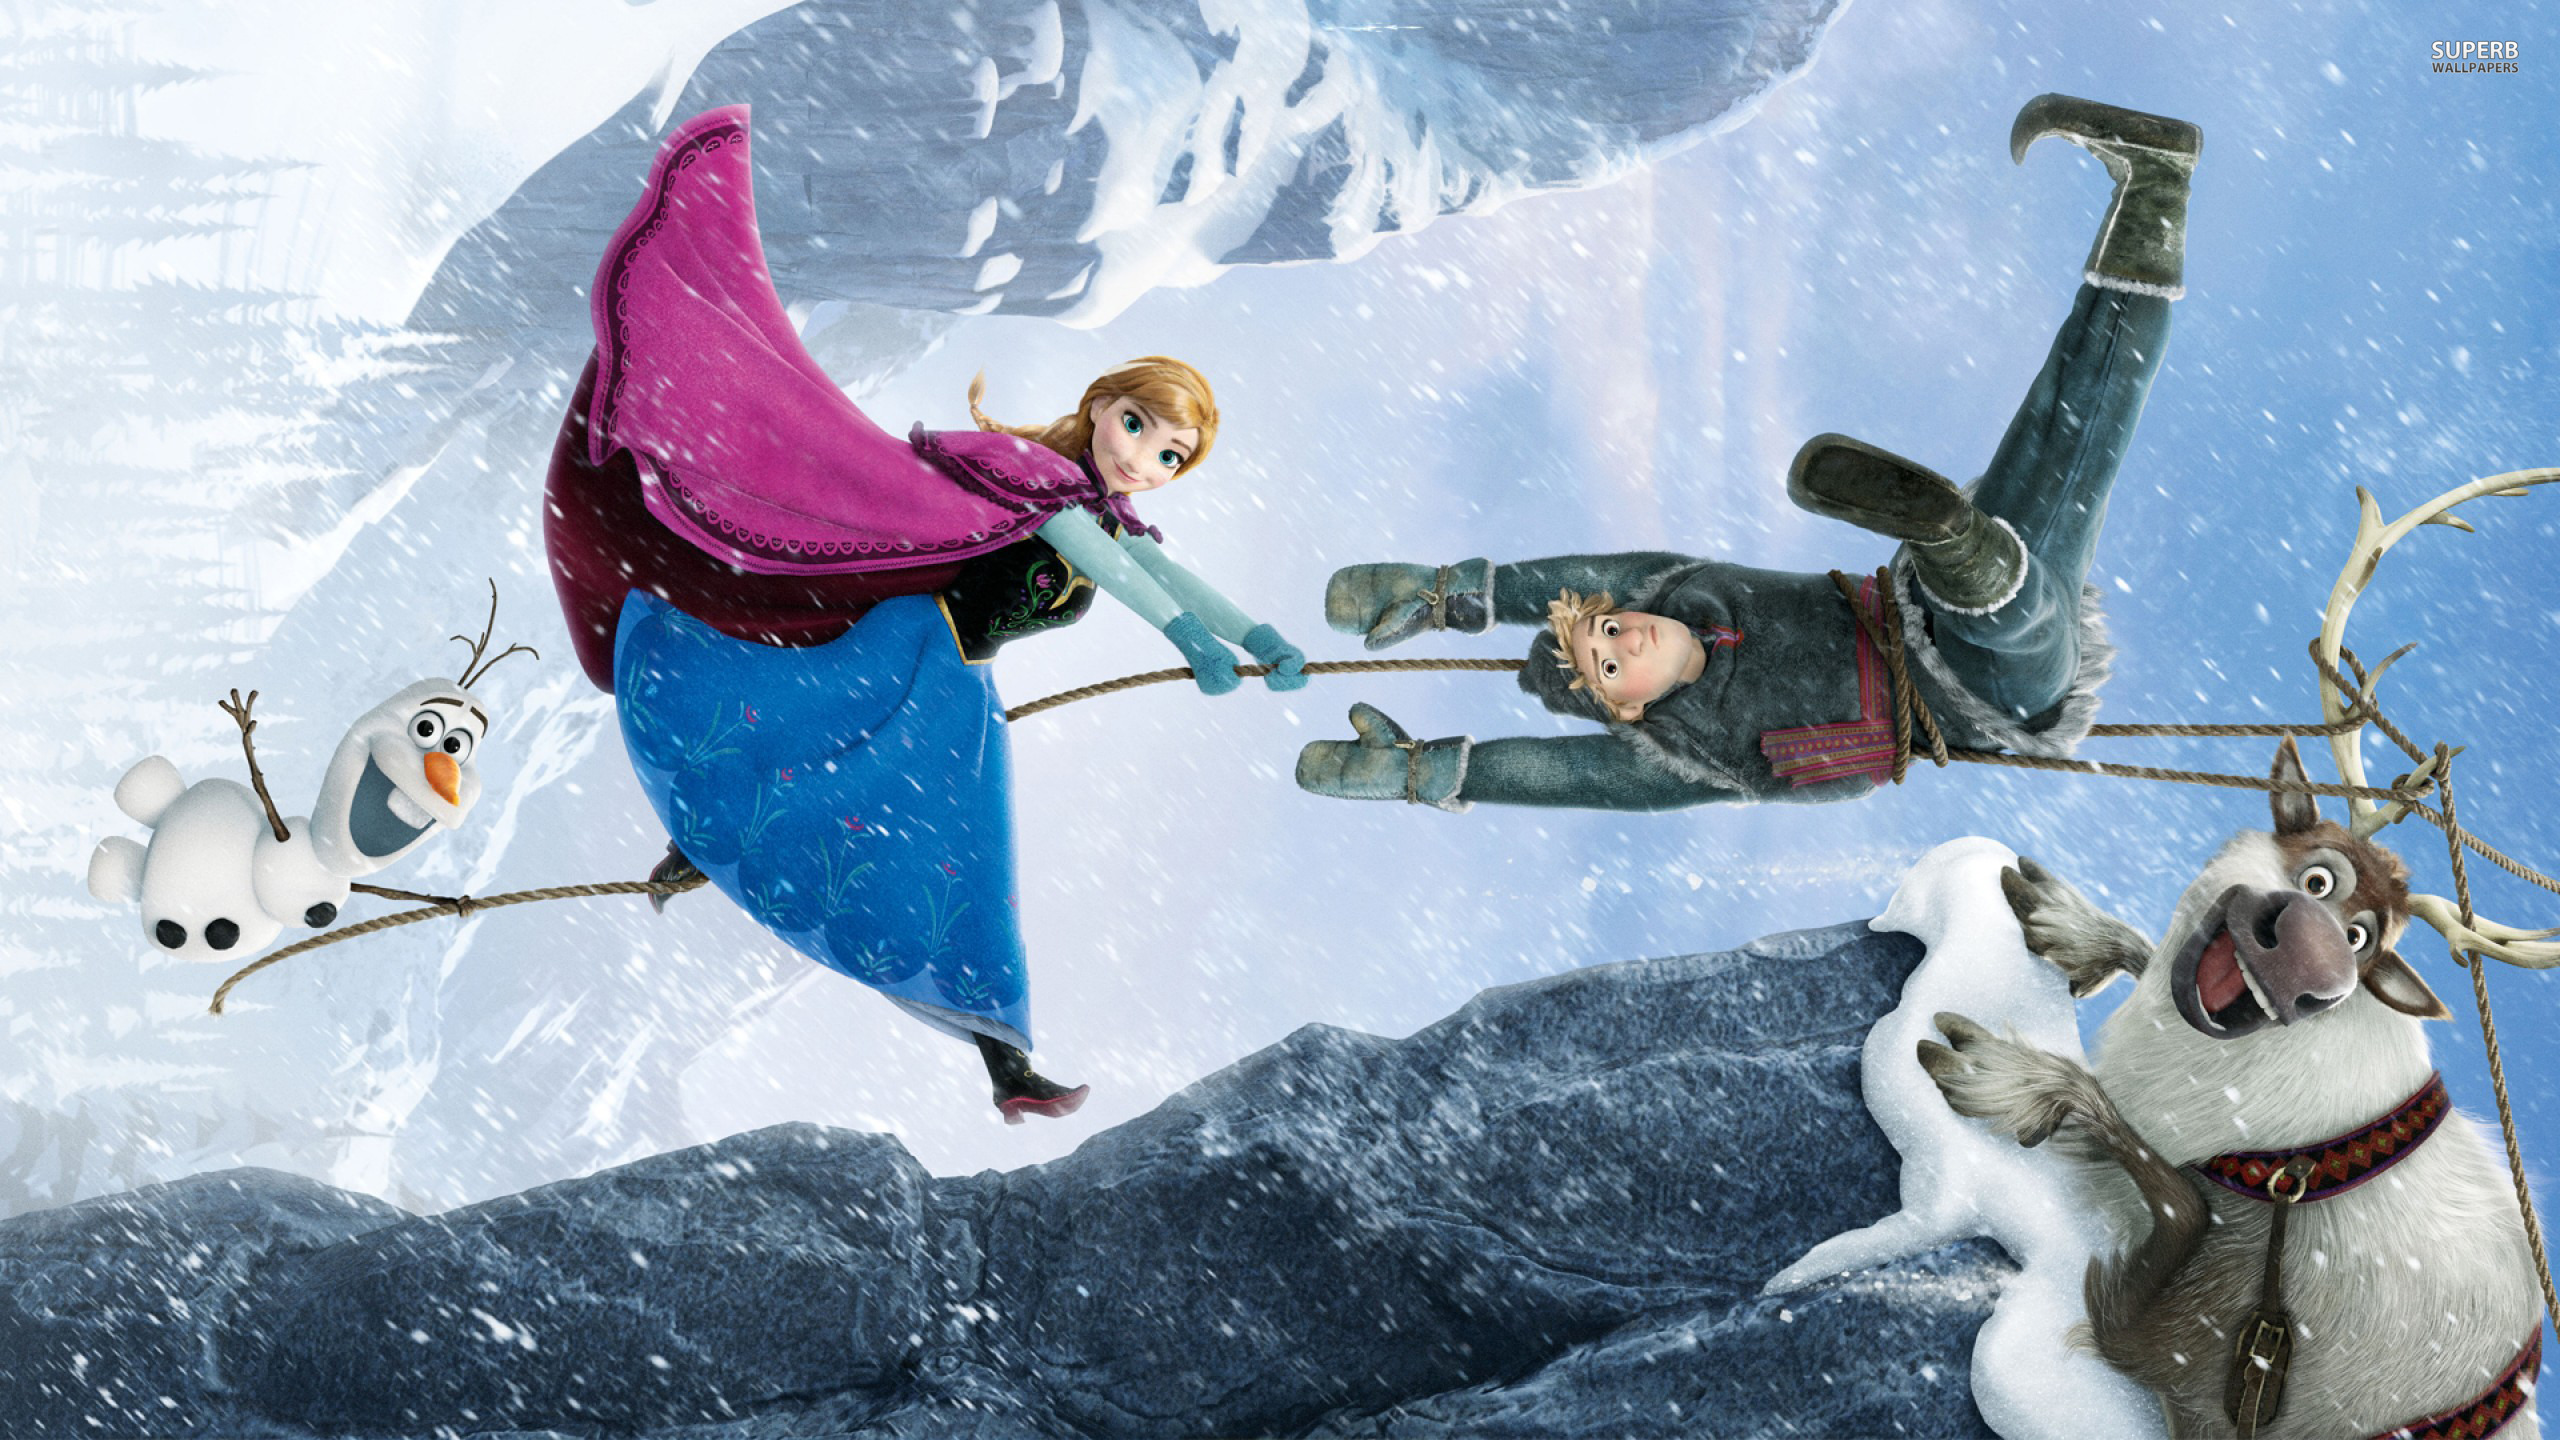 Frozen moment from movie wallpapers and images   wallpapers pictures 2560x1440